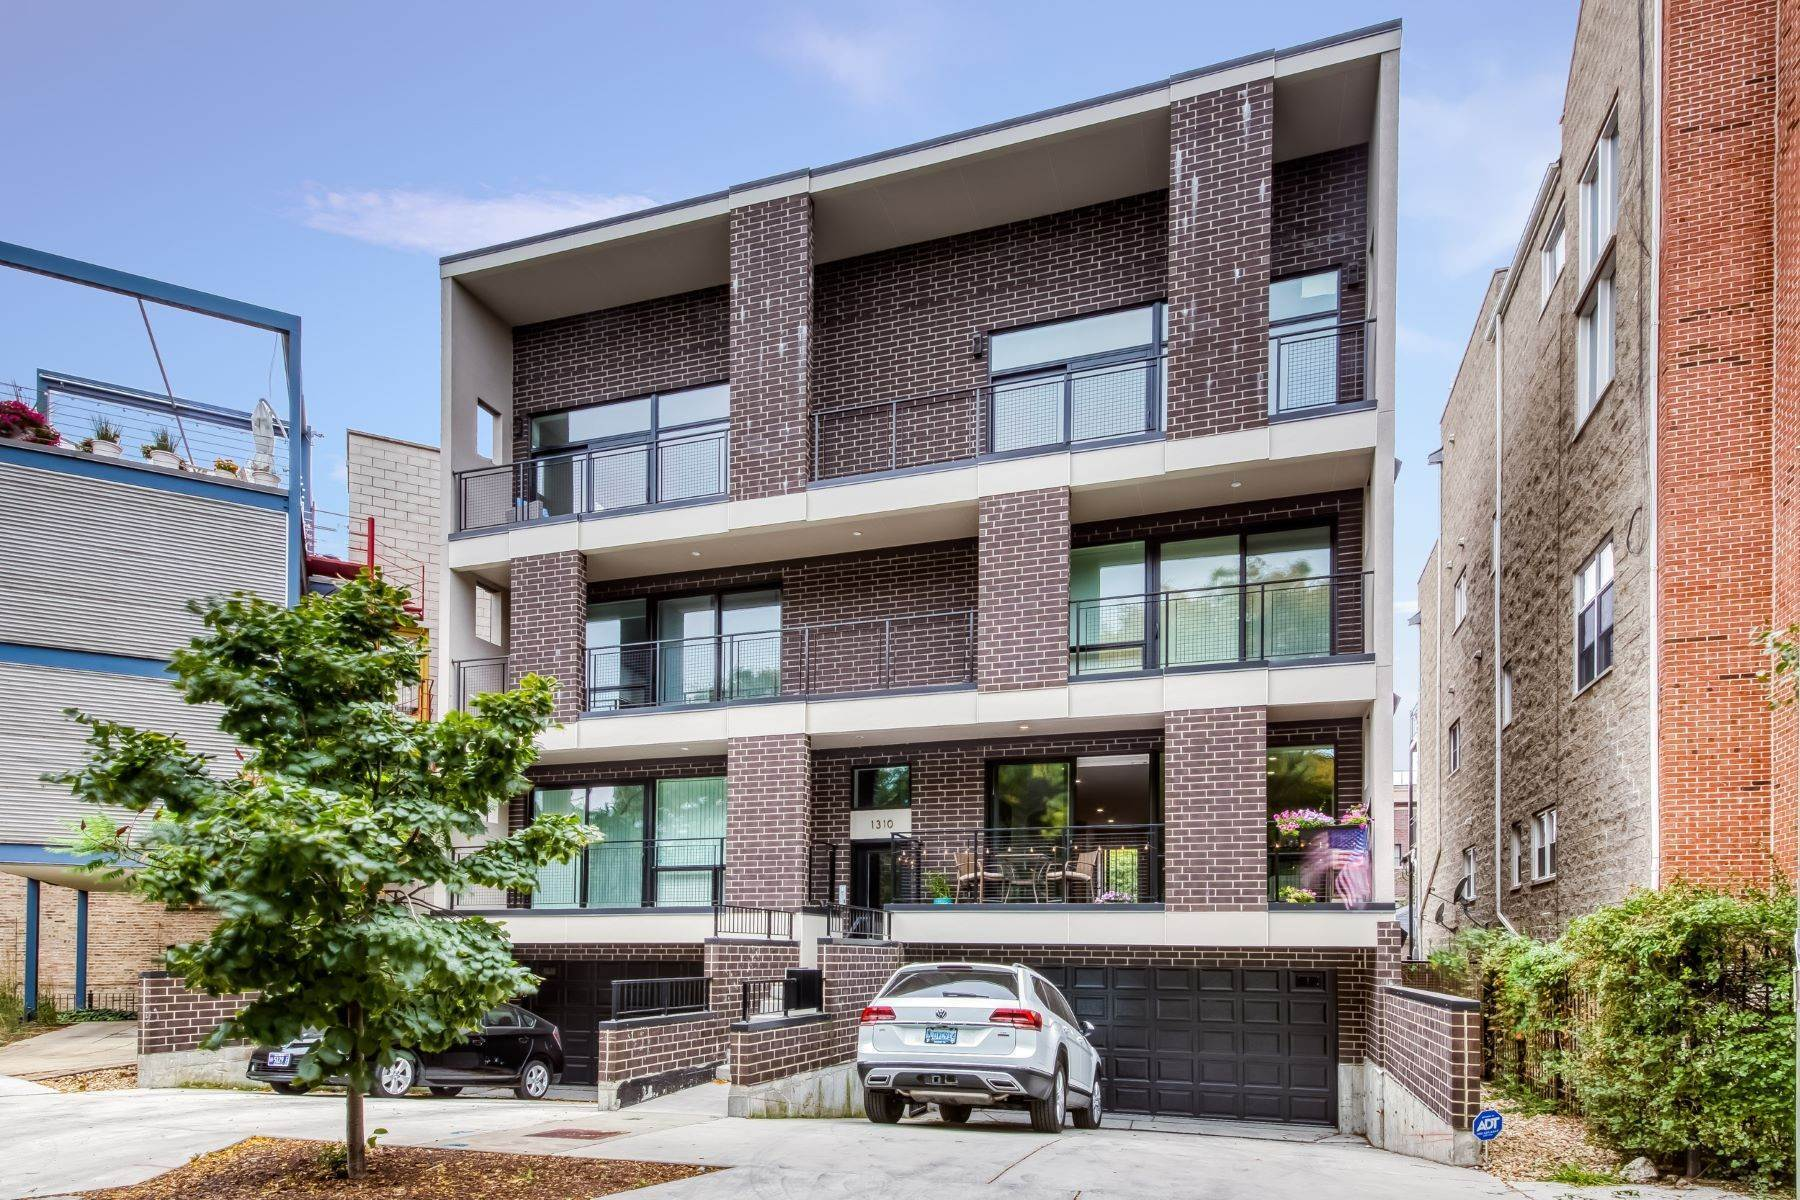 Duplex Homes for Sale at Recently Built Old Town Three Bedroom 1310 N Cleveland Avenue, Unit 1N Chicago, Illinois 60610 United States